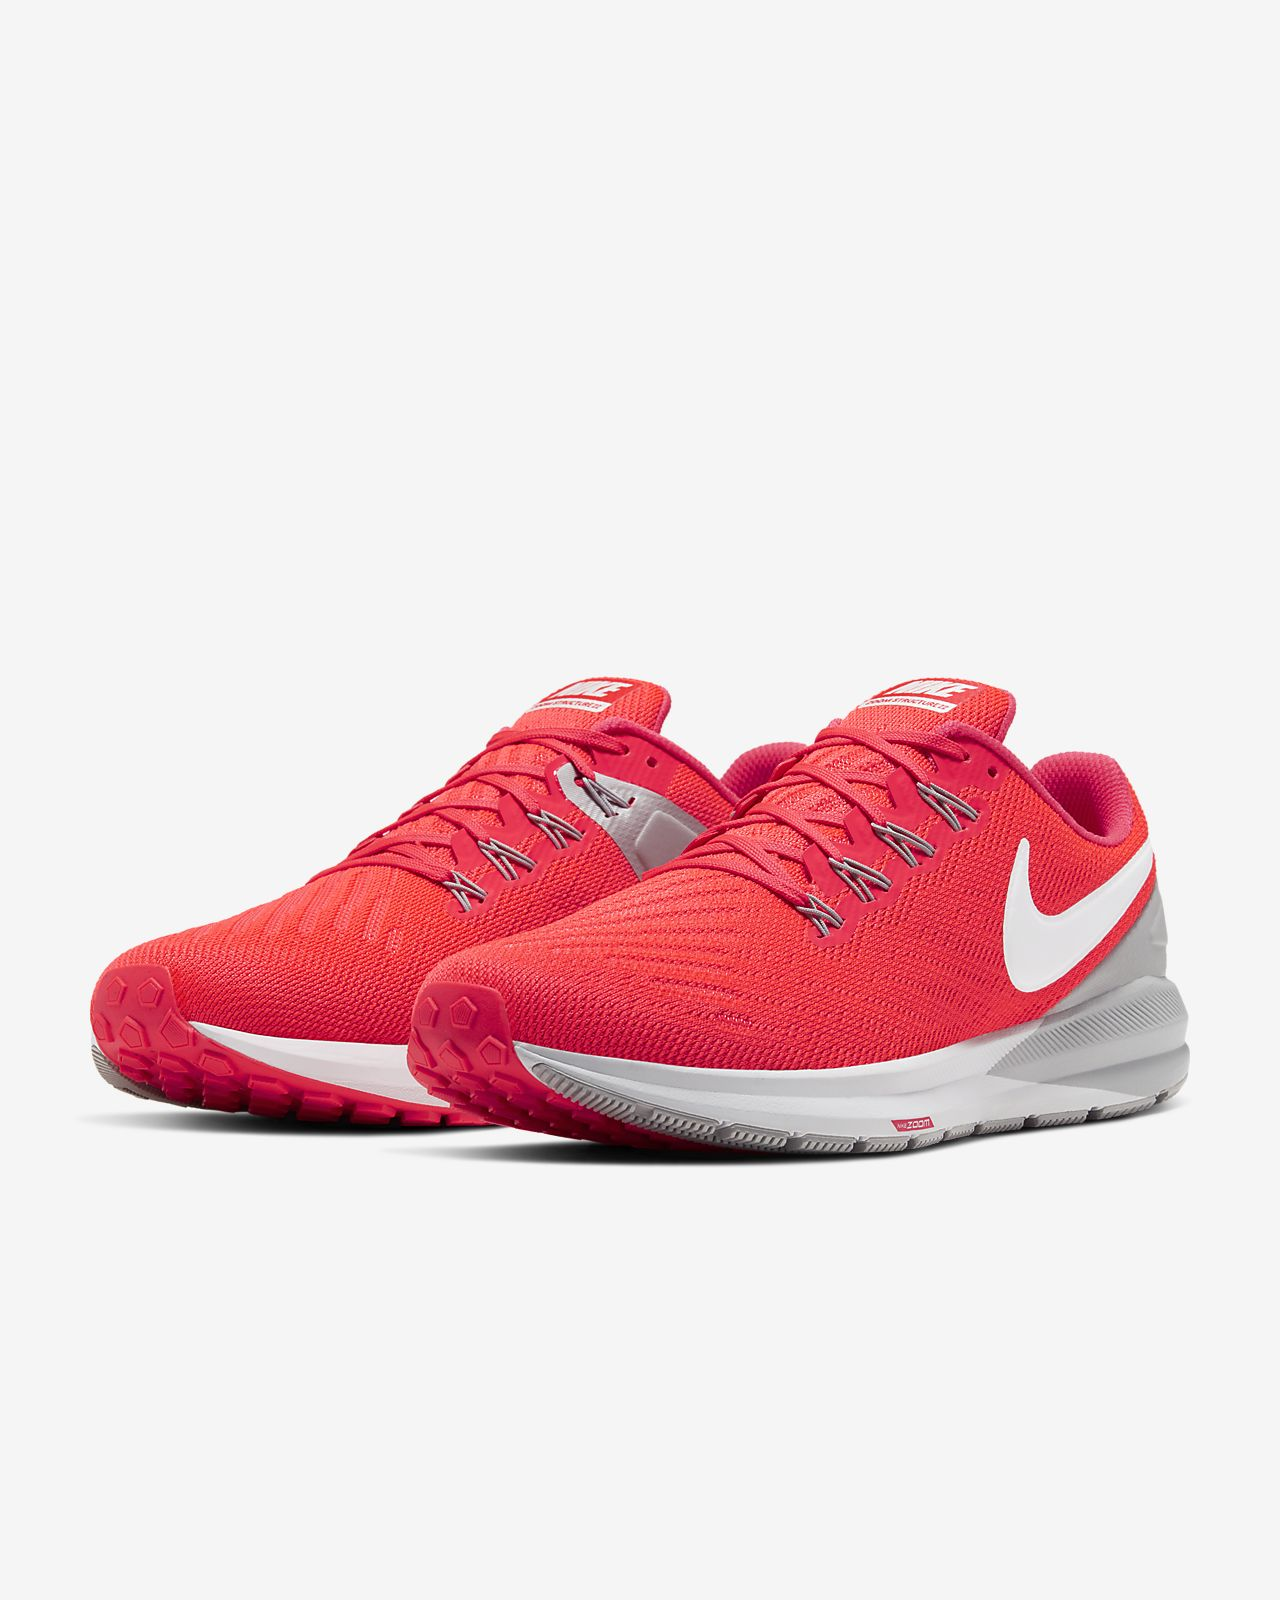 Nike Air Zoom Structure 22 Men's Running Shoes Laser Crimson